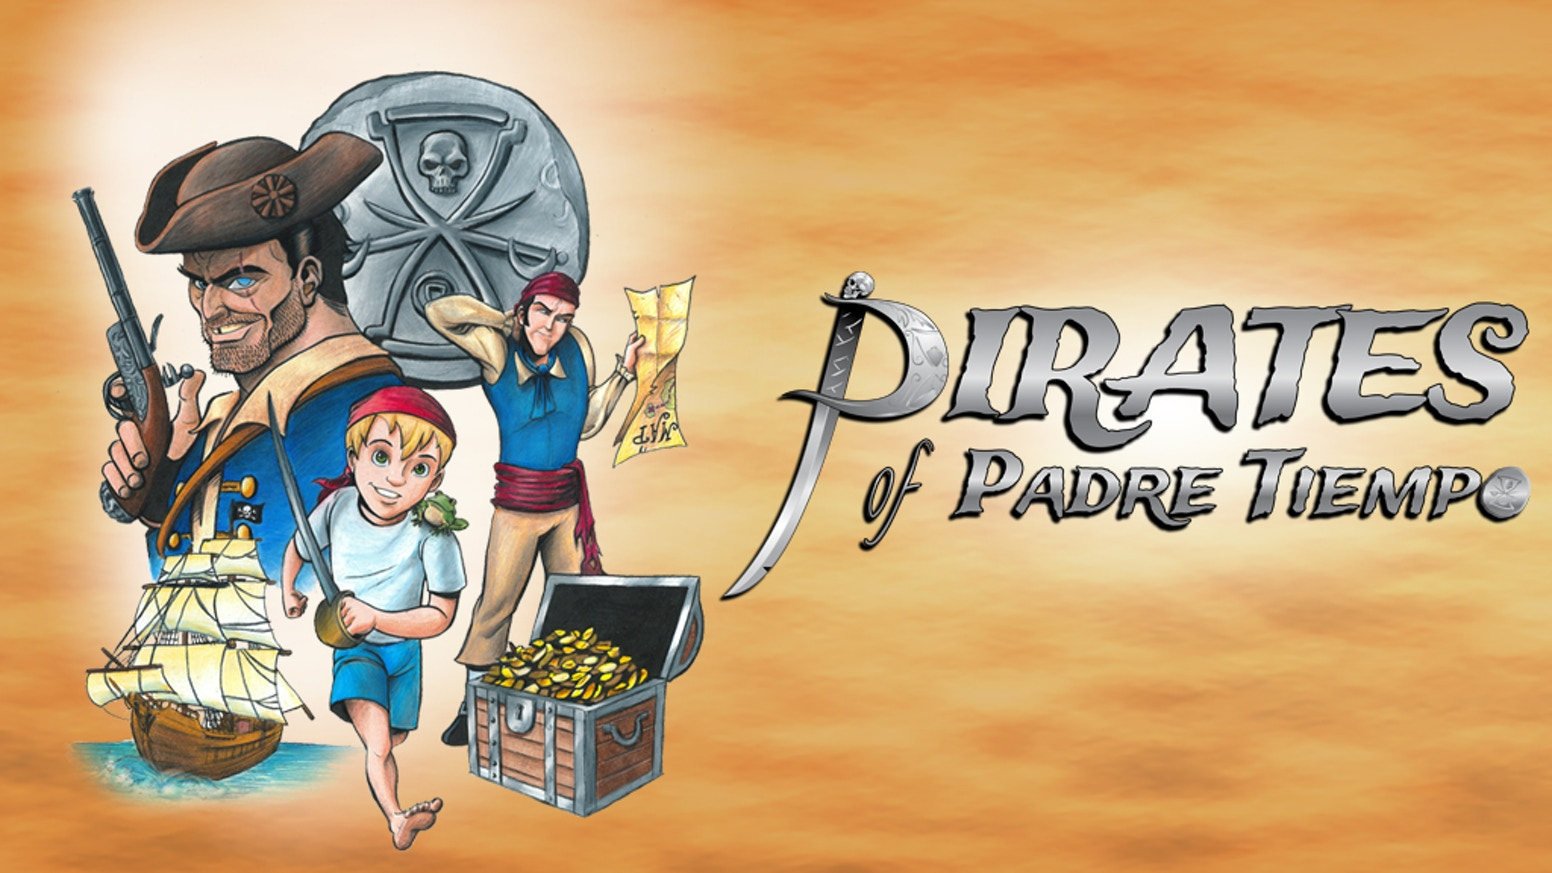 When a little boy comes across a cursed pirate treasure, he's transported back in time three hundred years to the Golden Age of Piracy!